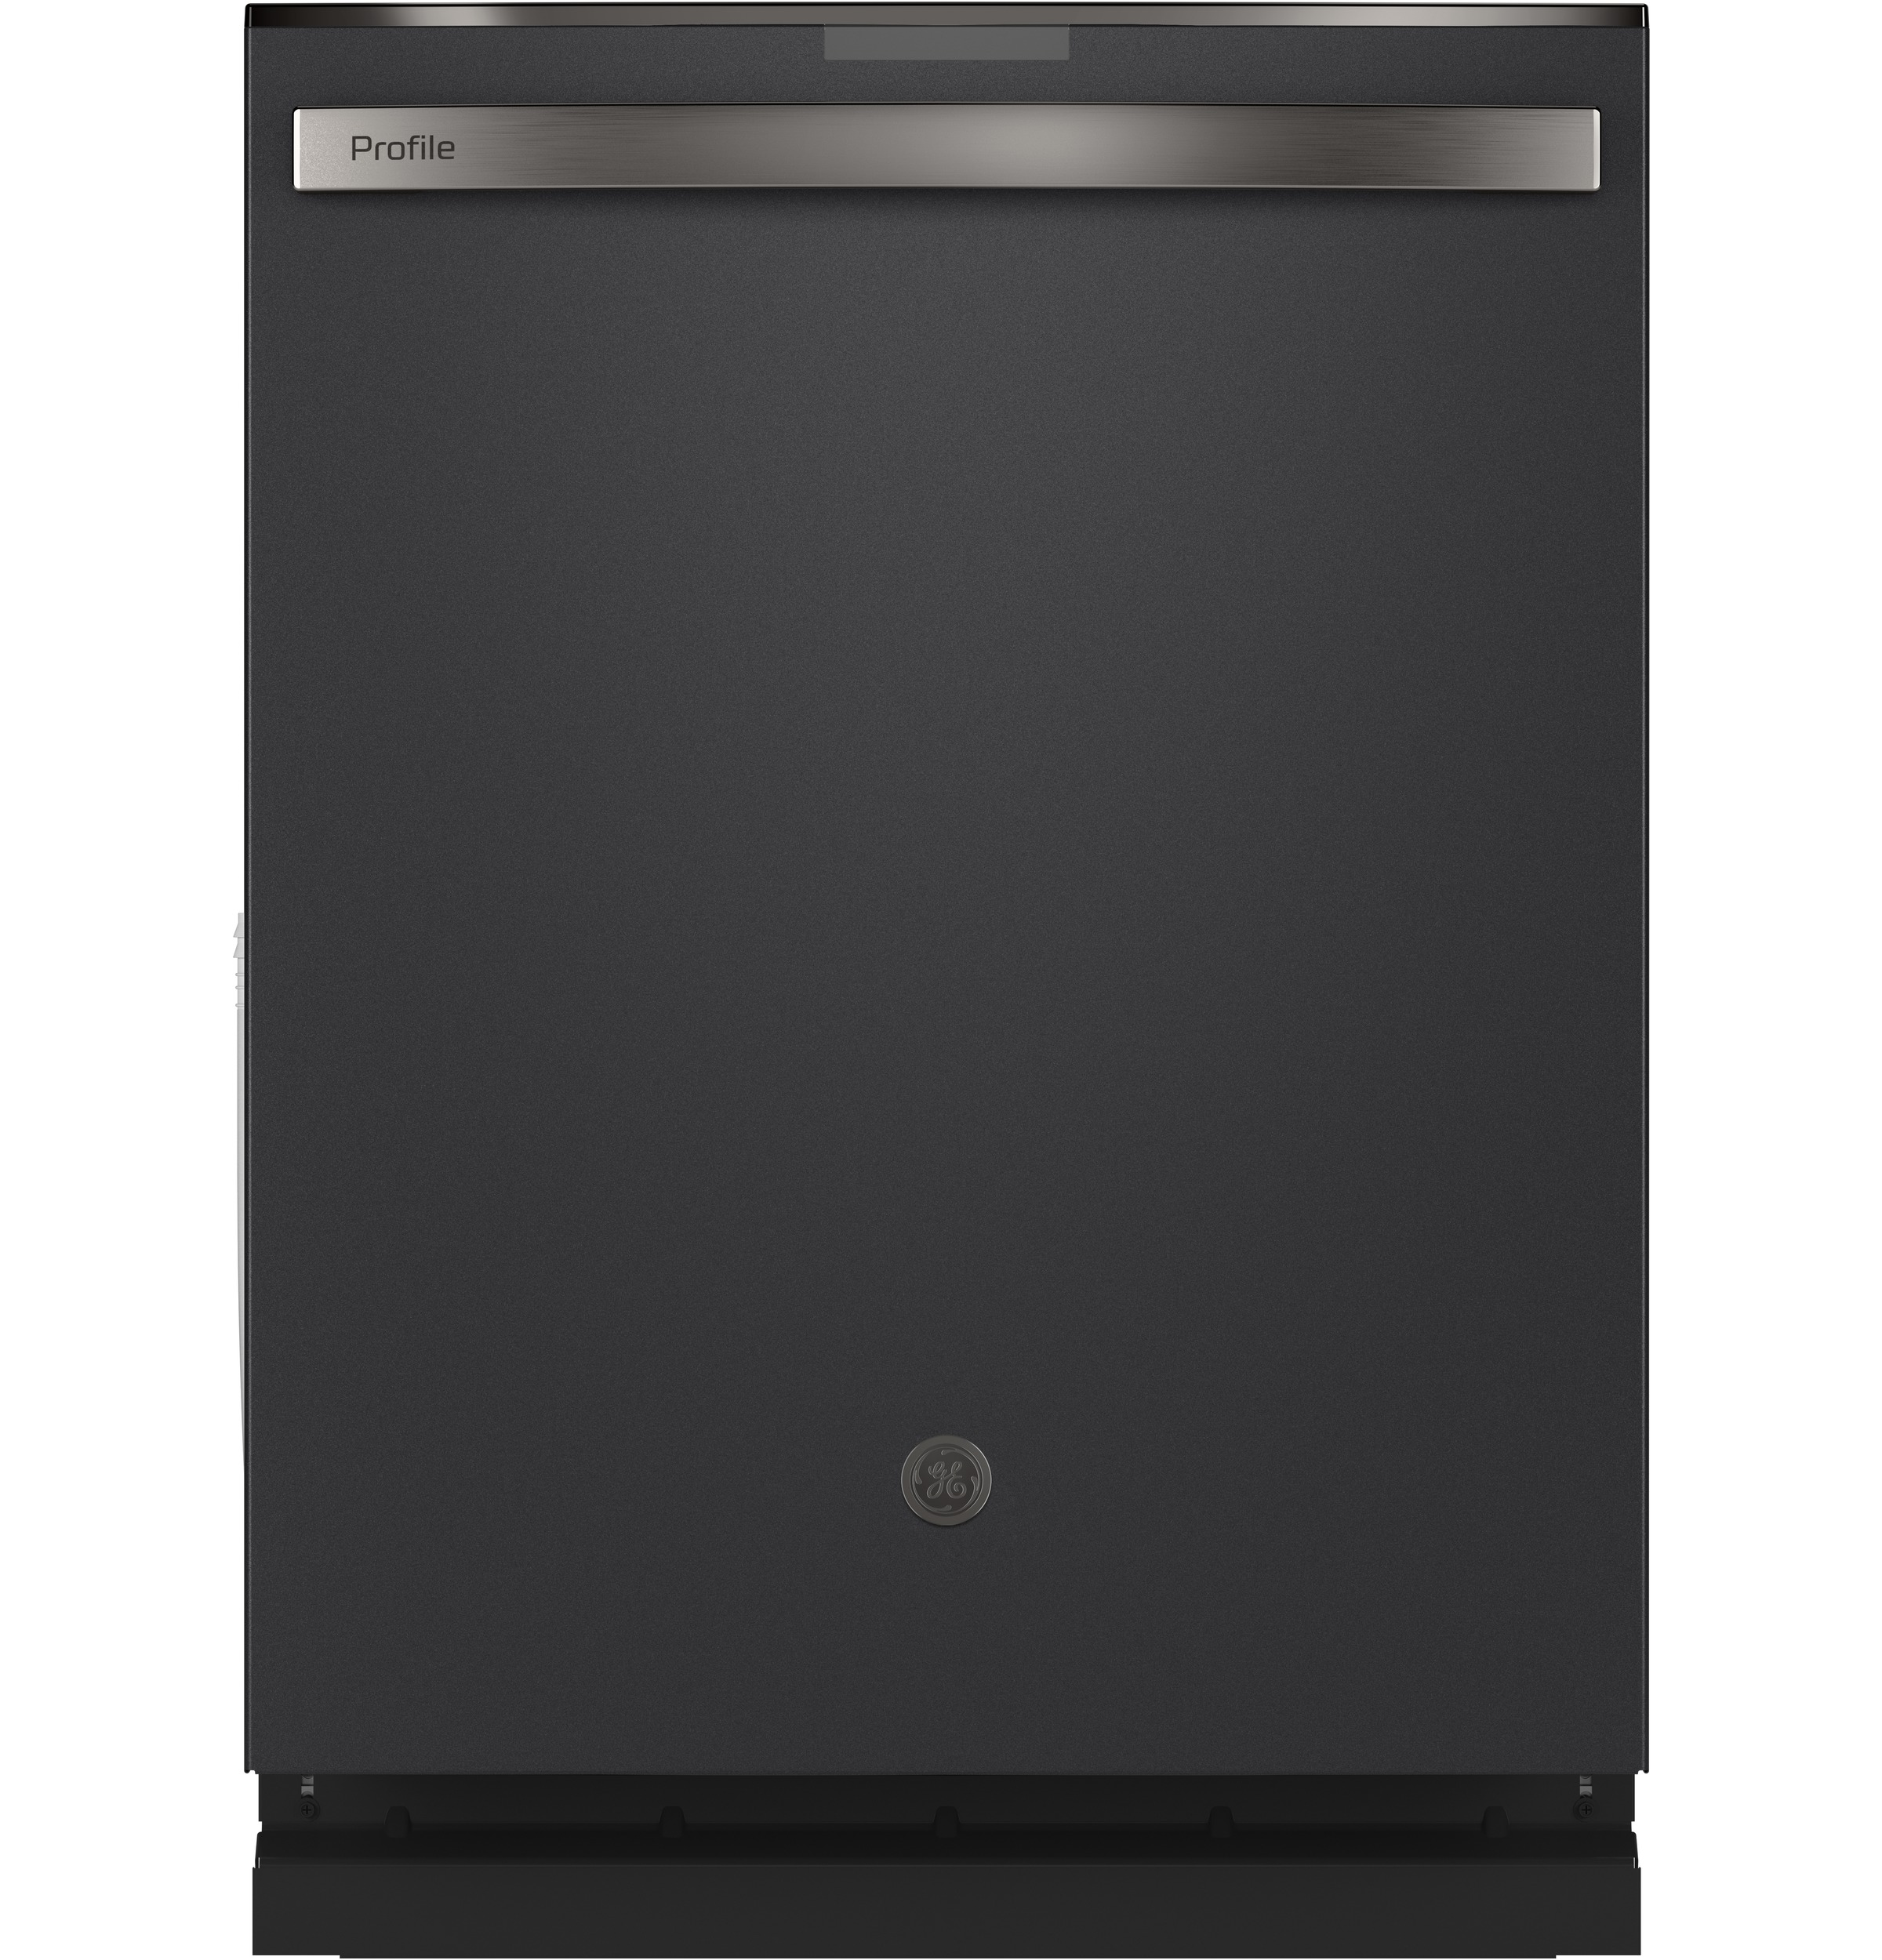 Model: PDT715SFNDS | GE Profile GE Profile™ Top Control with Stainless Steel Interior Dishwasher with Sanitize Cycle & Dry Boost with Fan Assist